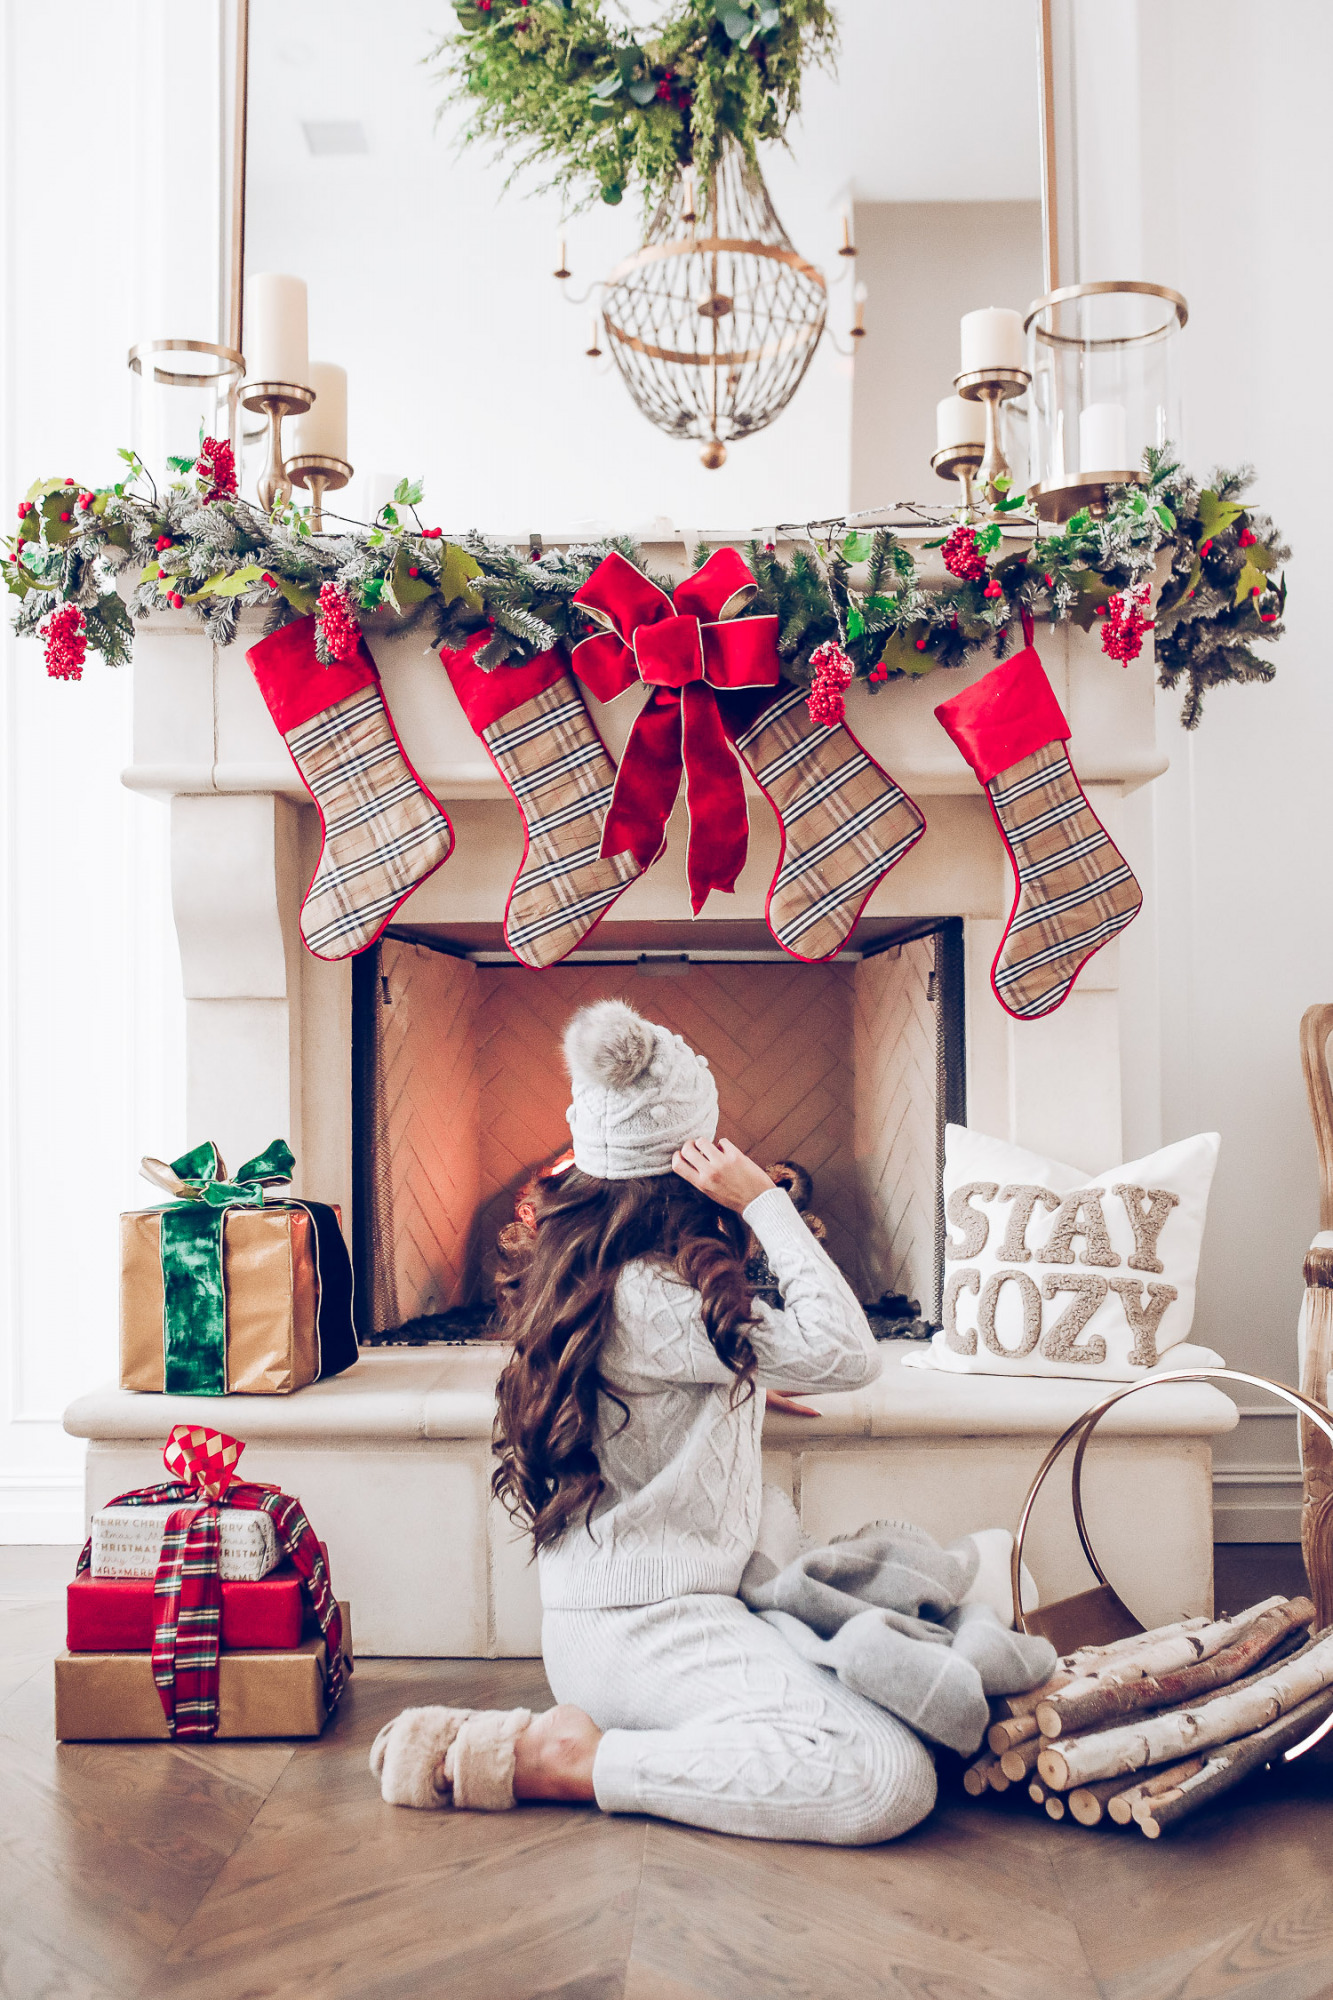 Express loungewear holiday 2020, express sweatsuit december 2020, emily gemma, holiday fireplace garland christmas |Cute Loungewear by popular US fashion blog, The Sweetest Thing: image of Emily Gemma sitting in front of a fireplace decorated with a garland, plaid stockings, and wrapped presents and wearing an Express sweater, Express pants, Express fuzzy slippers, and an Express pom beanie.